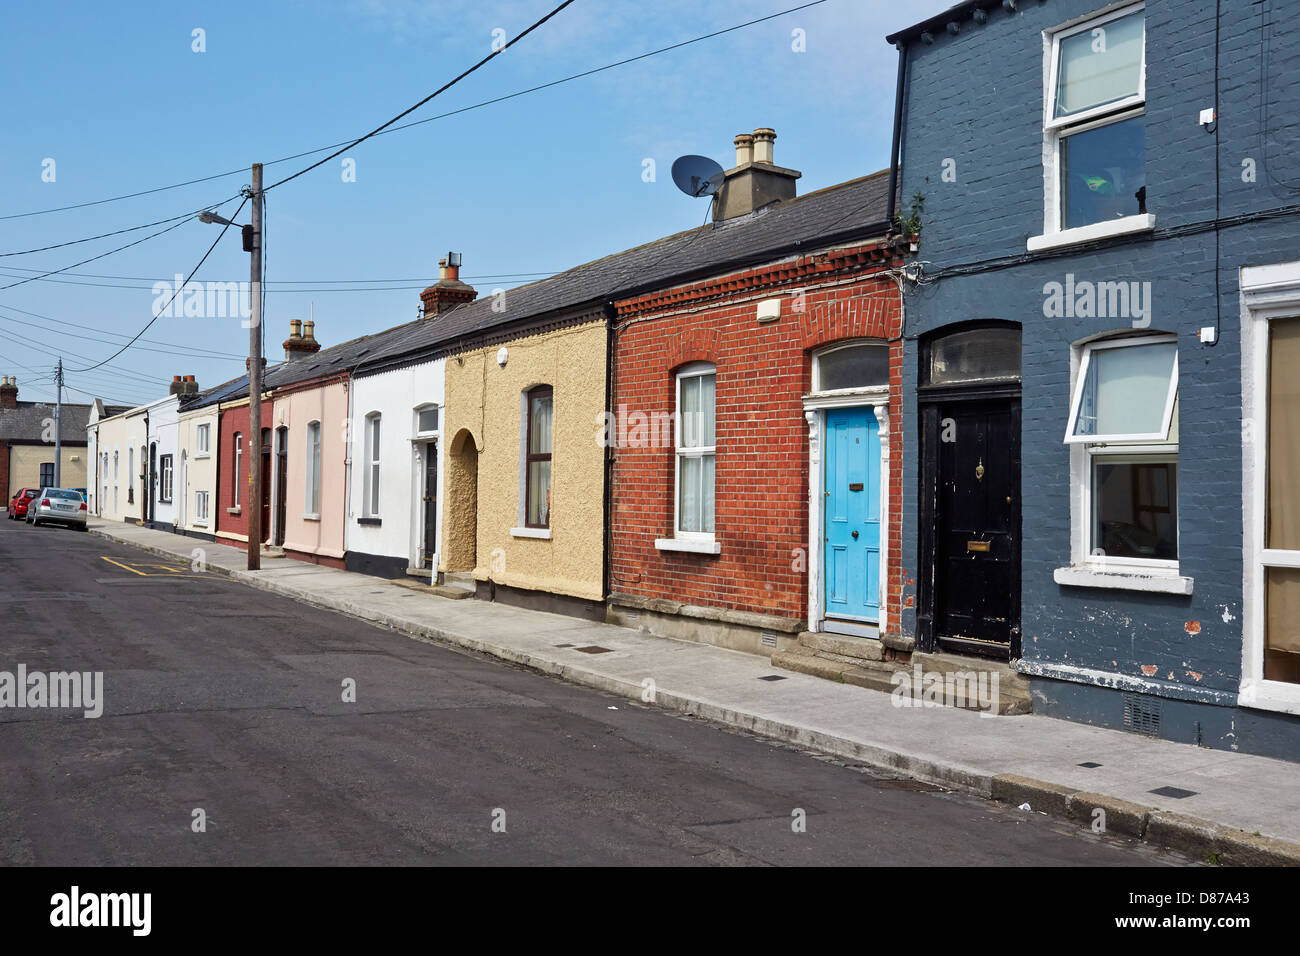 traditional cottage houses in the inner city area of north strand